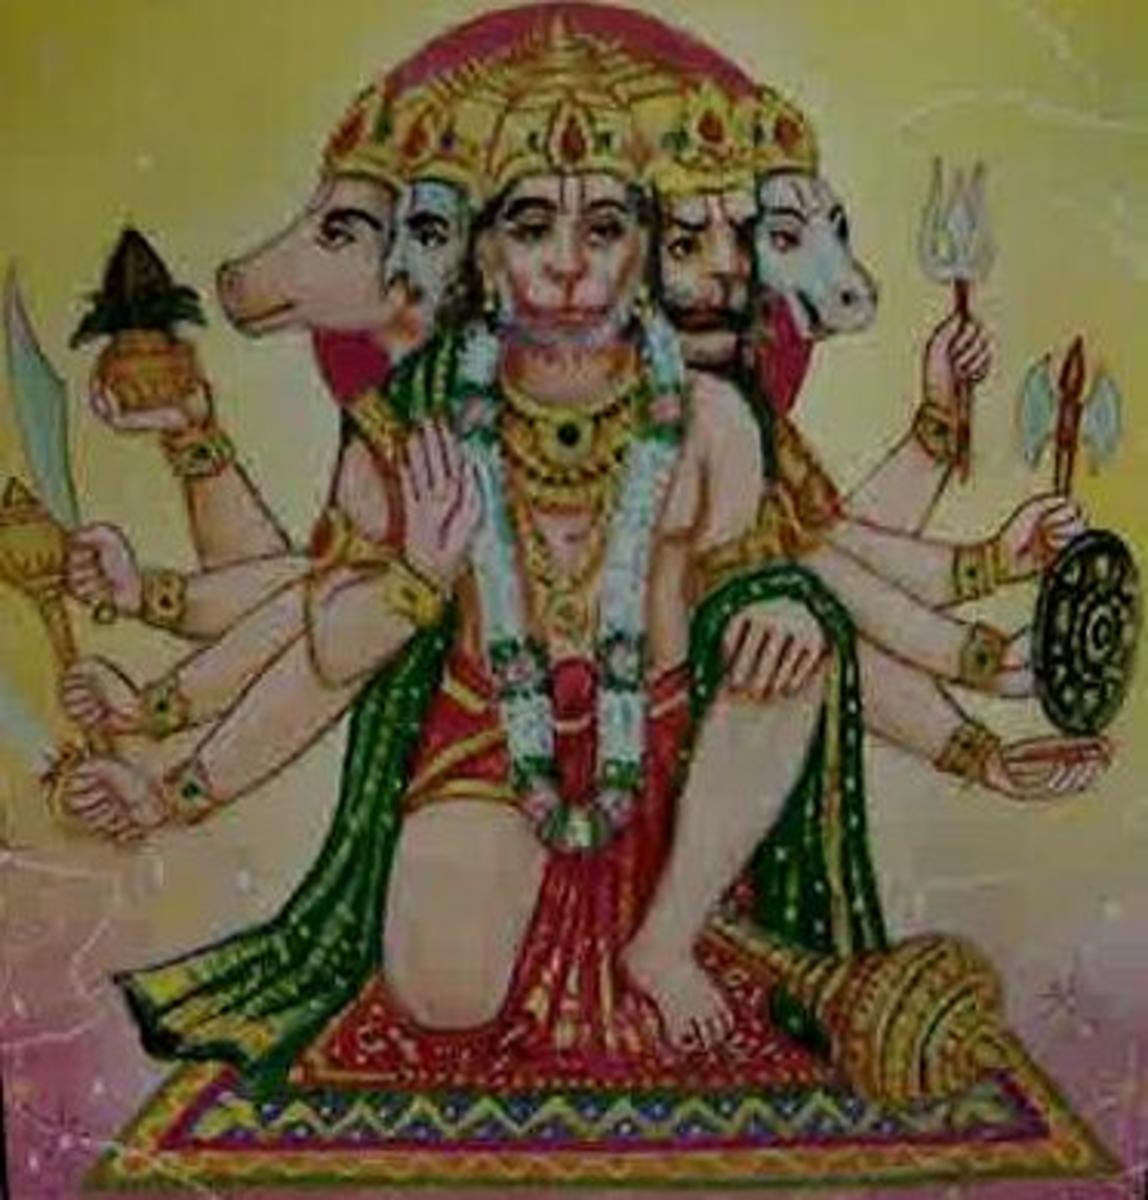 Picture depicting verse 31 of the Hanuman Chalisa